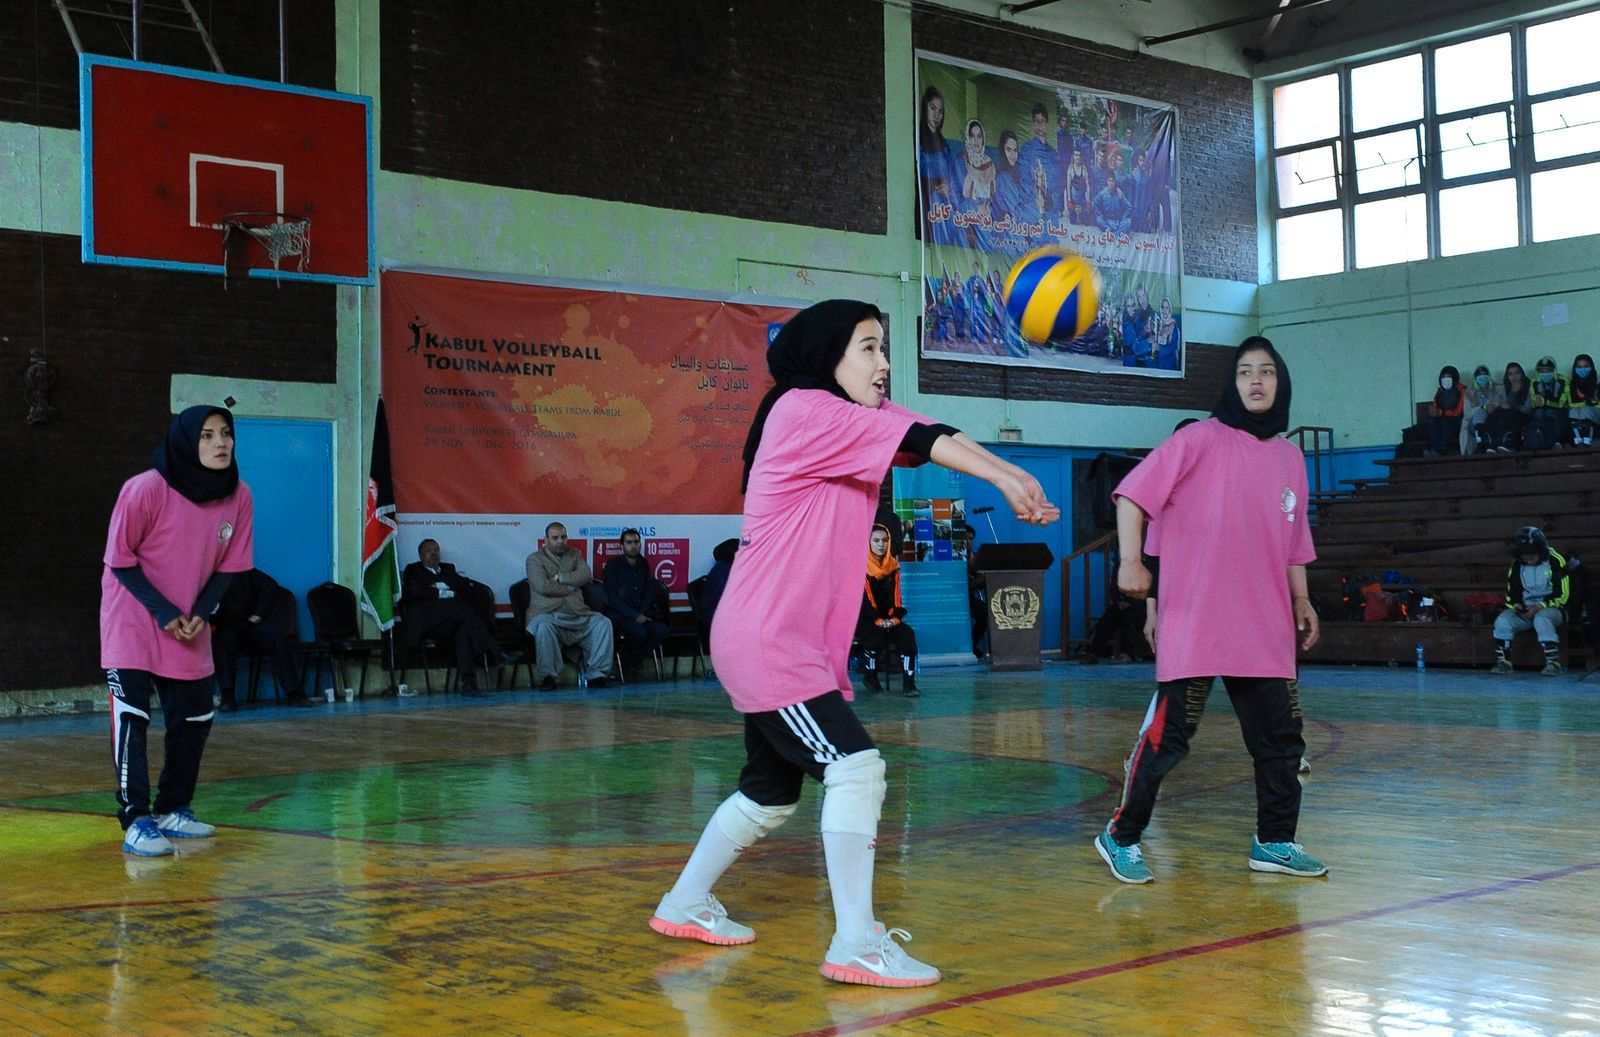 Afghan women play Volleyball